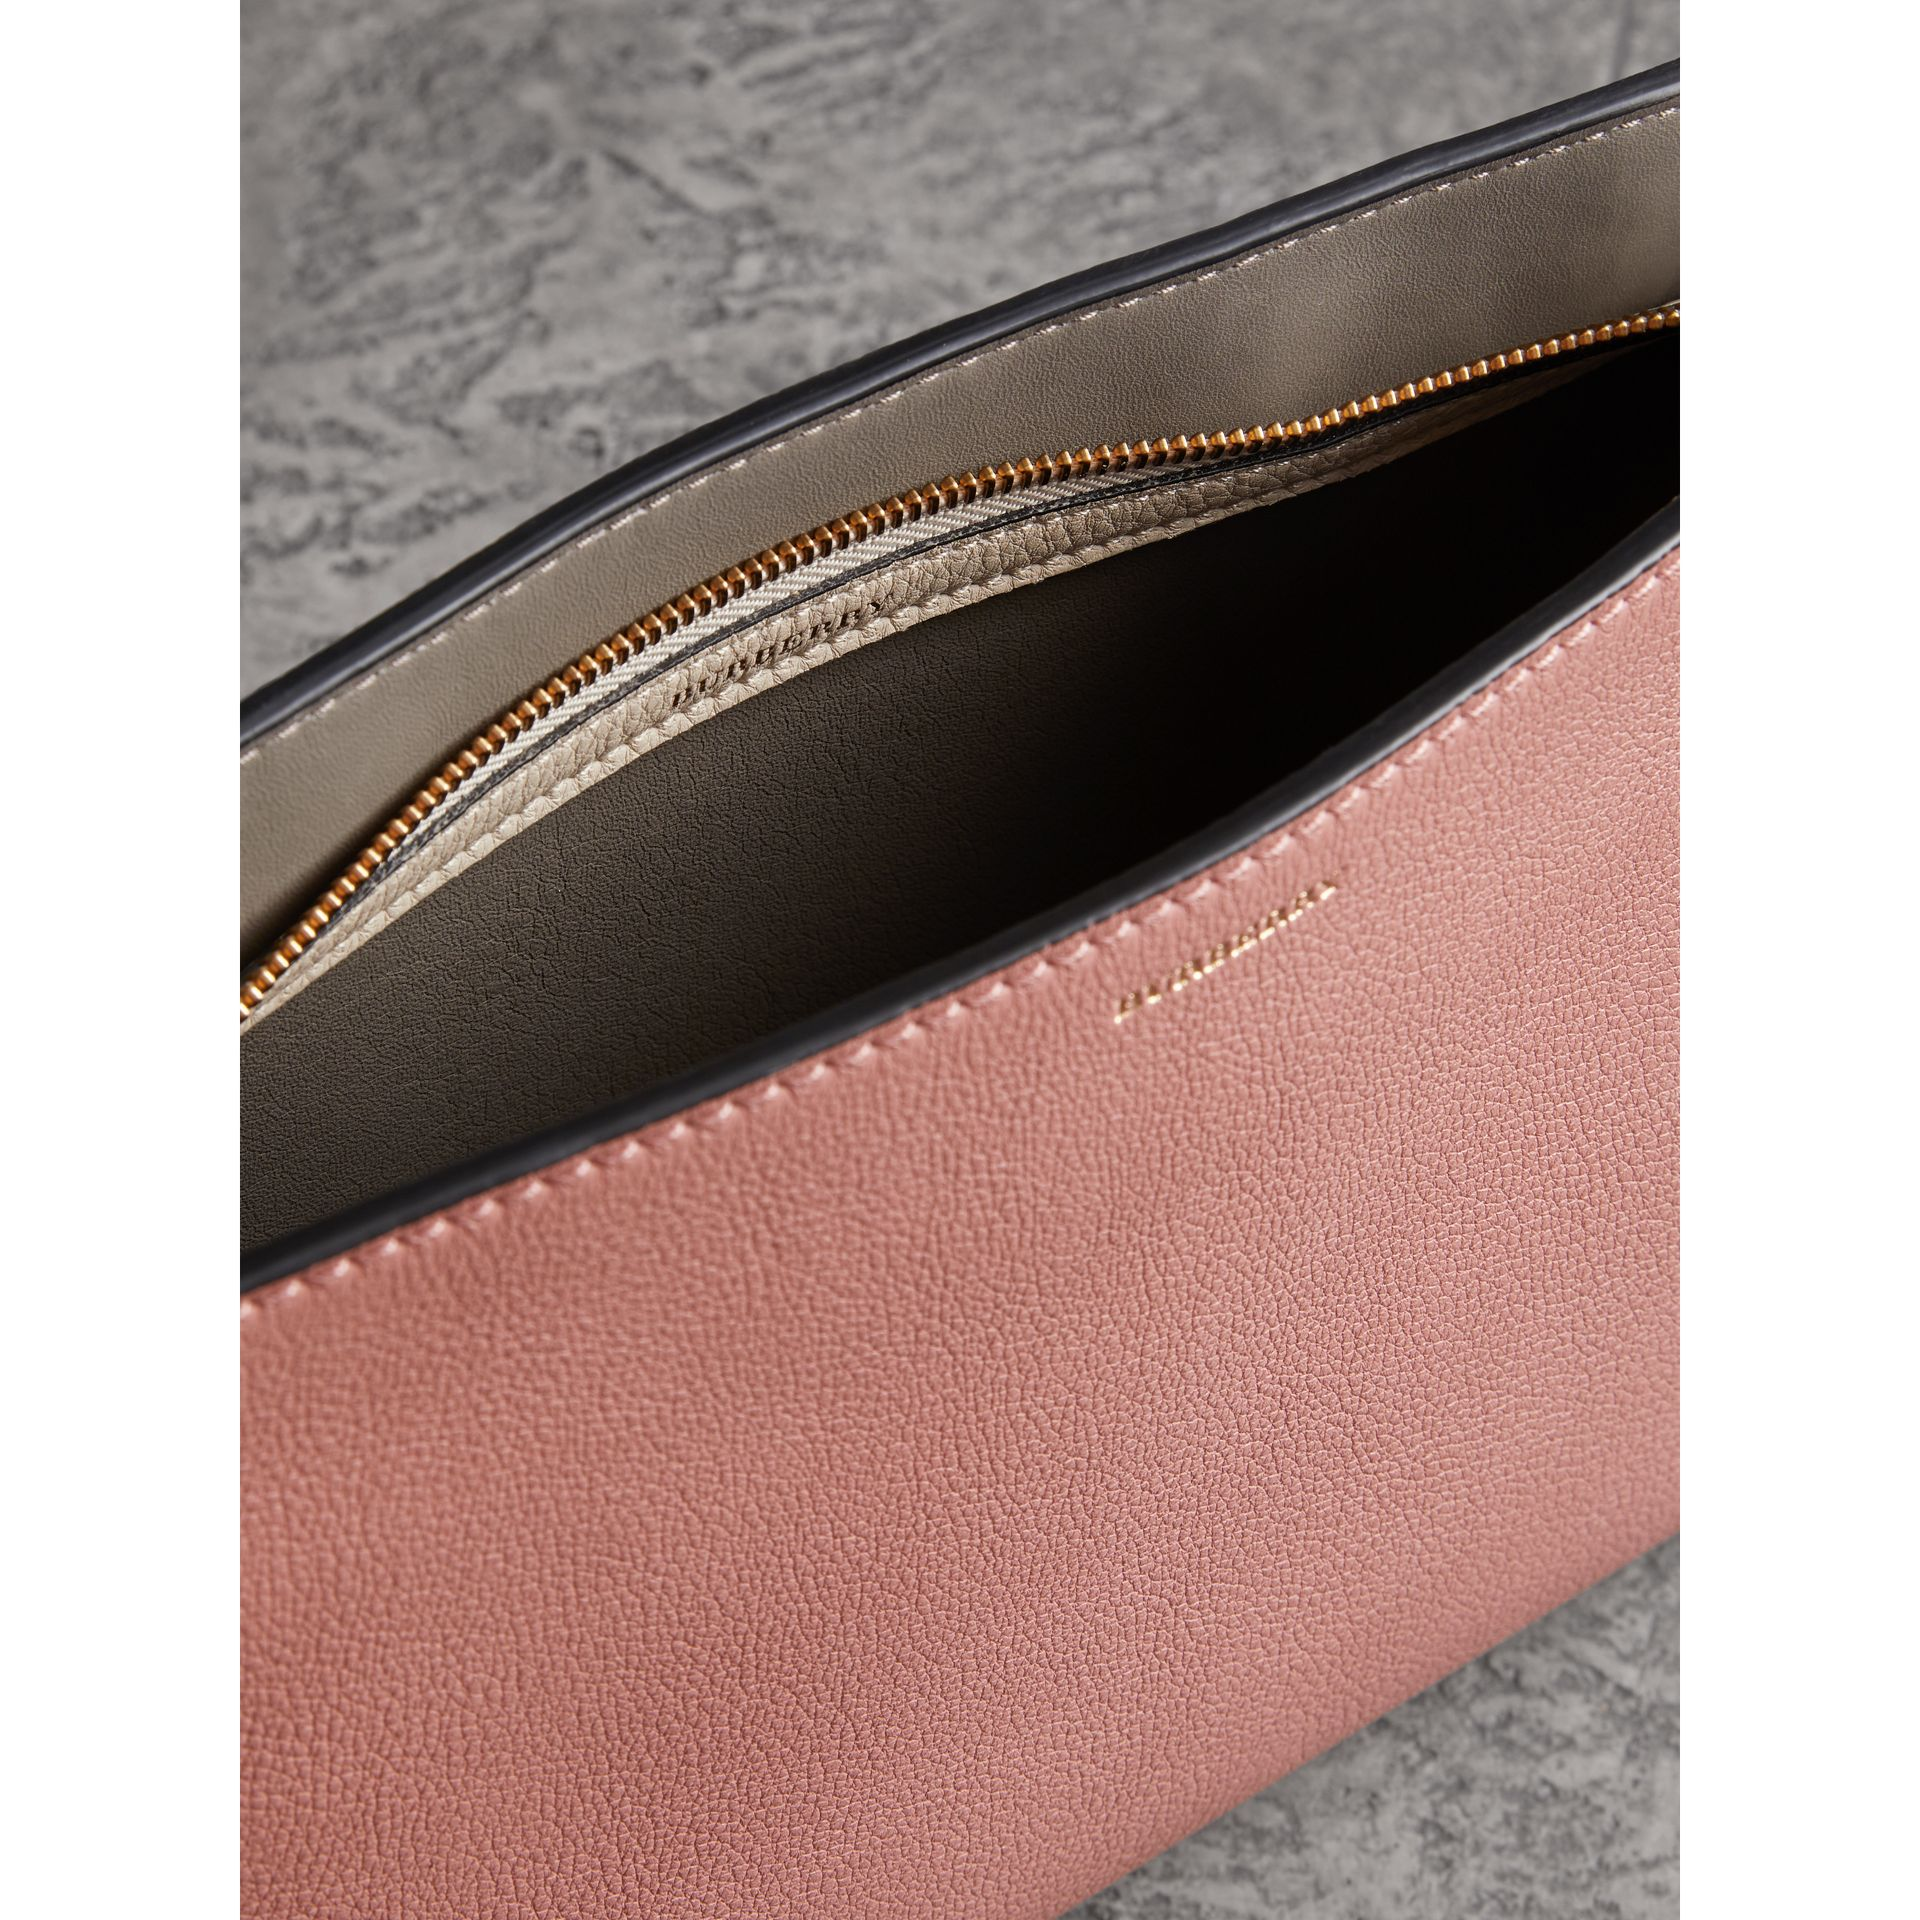 Medium Tri-tone Leather Clutch in Dusty Rose/limestone - Women | Burberry - gallery image 5